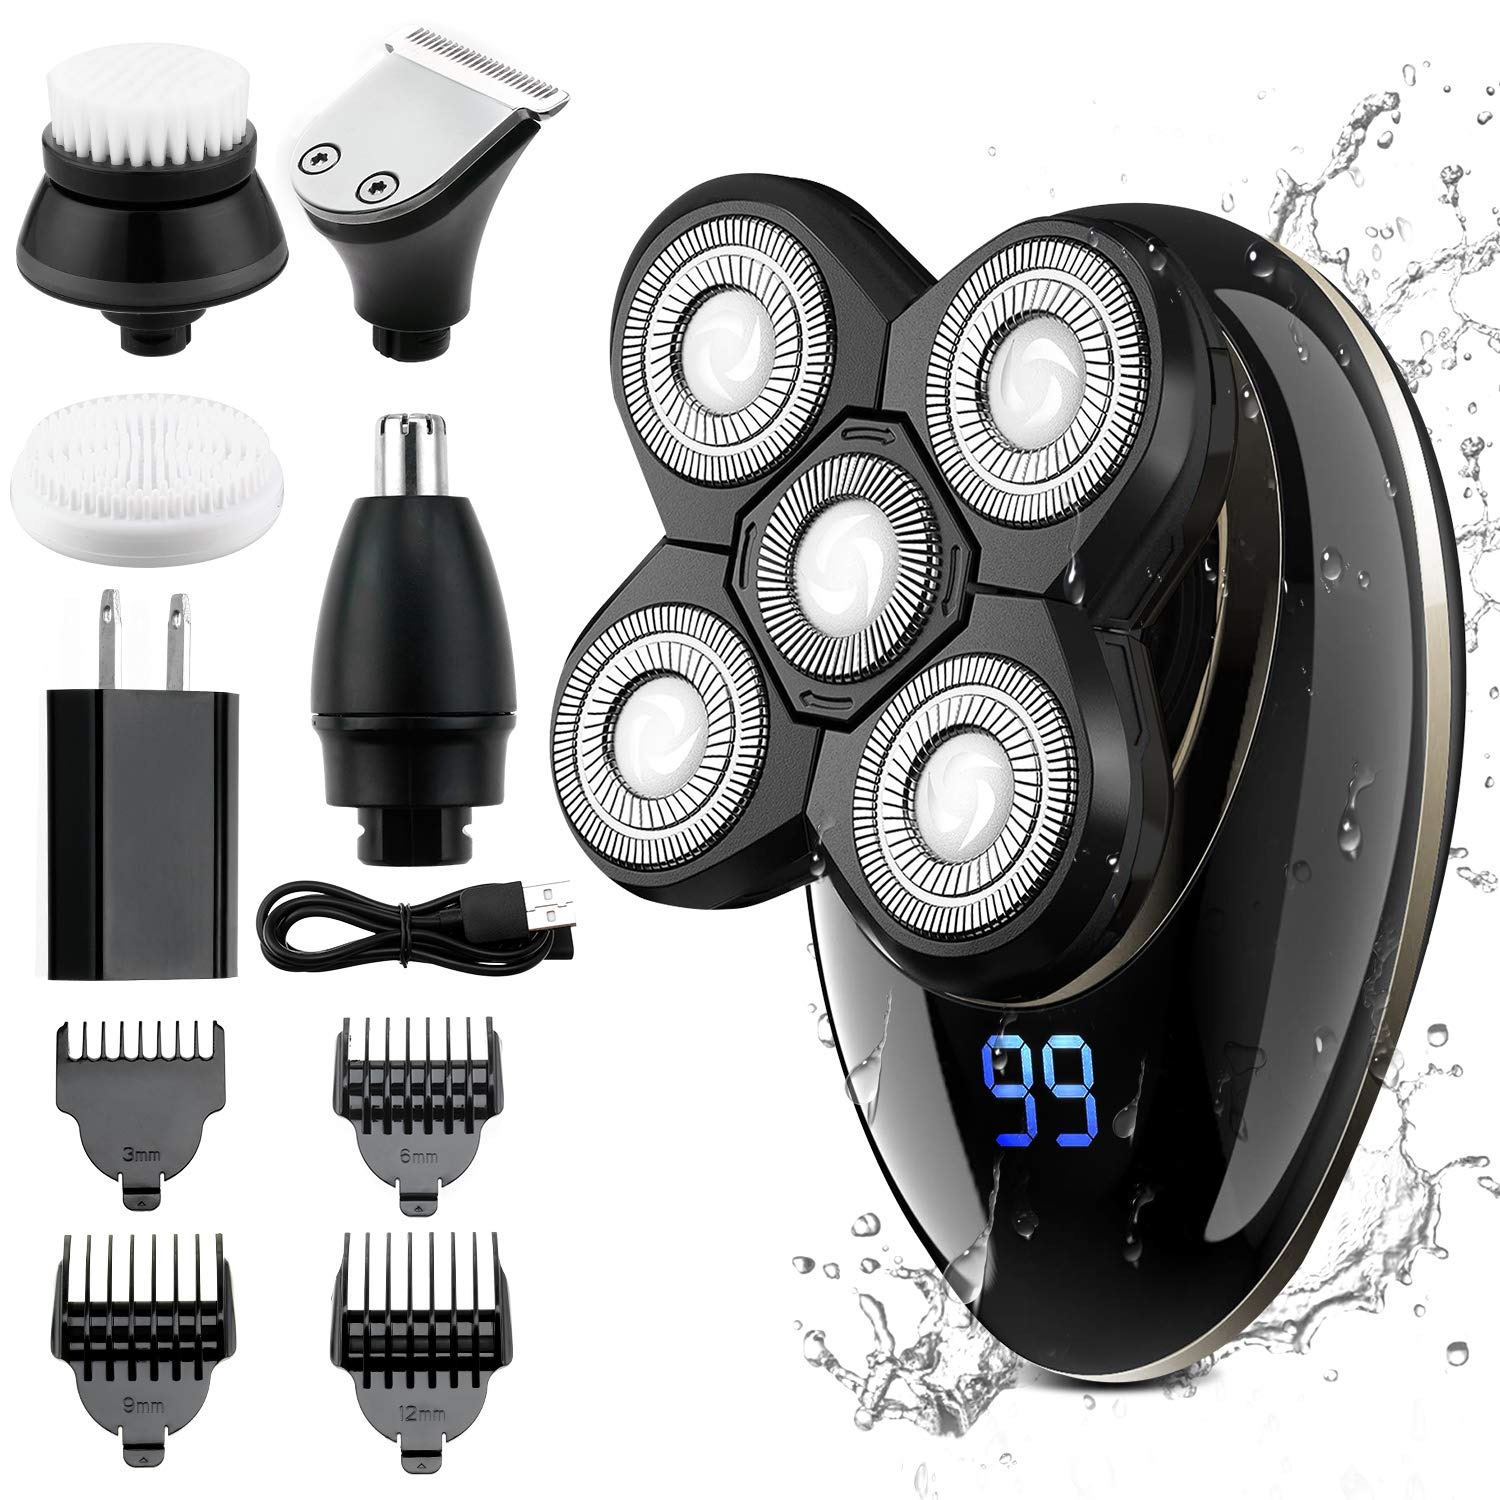 Electric Shaver for Men Grooming Kit, GOOLEEN 5 in 1 Electric Razor Cordless Waterproof Wet Dry Rotary Bald Head Shaver Nose Trimmer Hair Clippers Facial Cleansing Brush LED Display USB Rechargeable